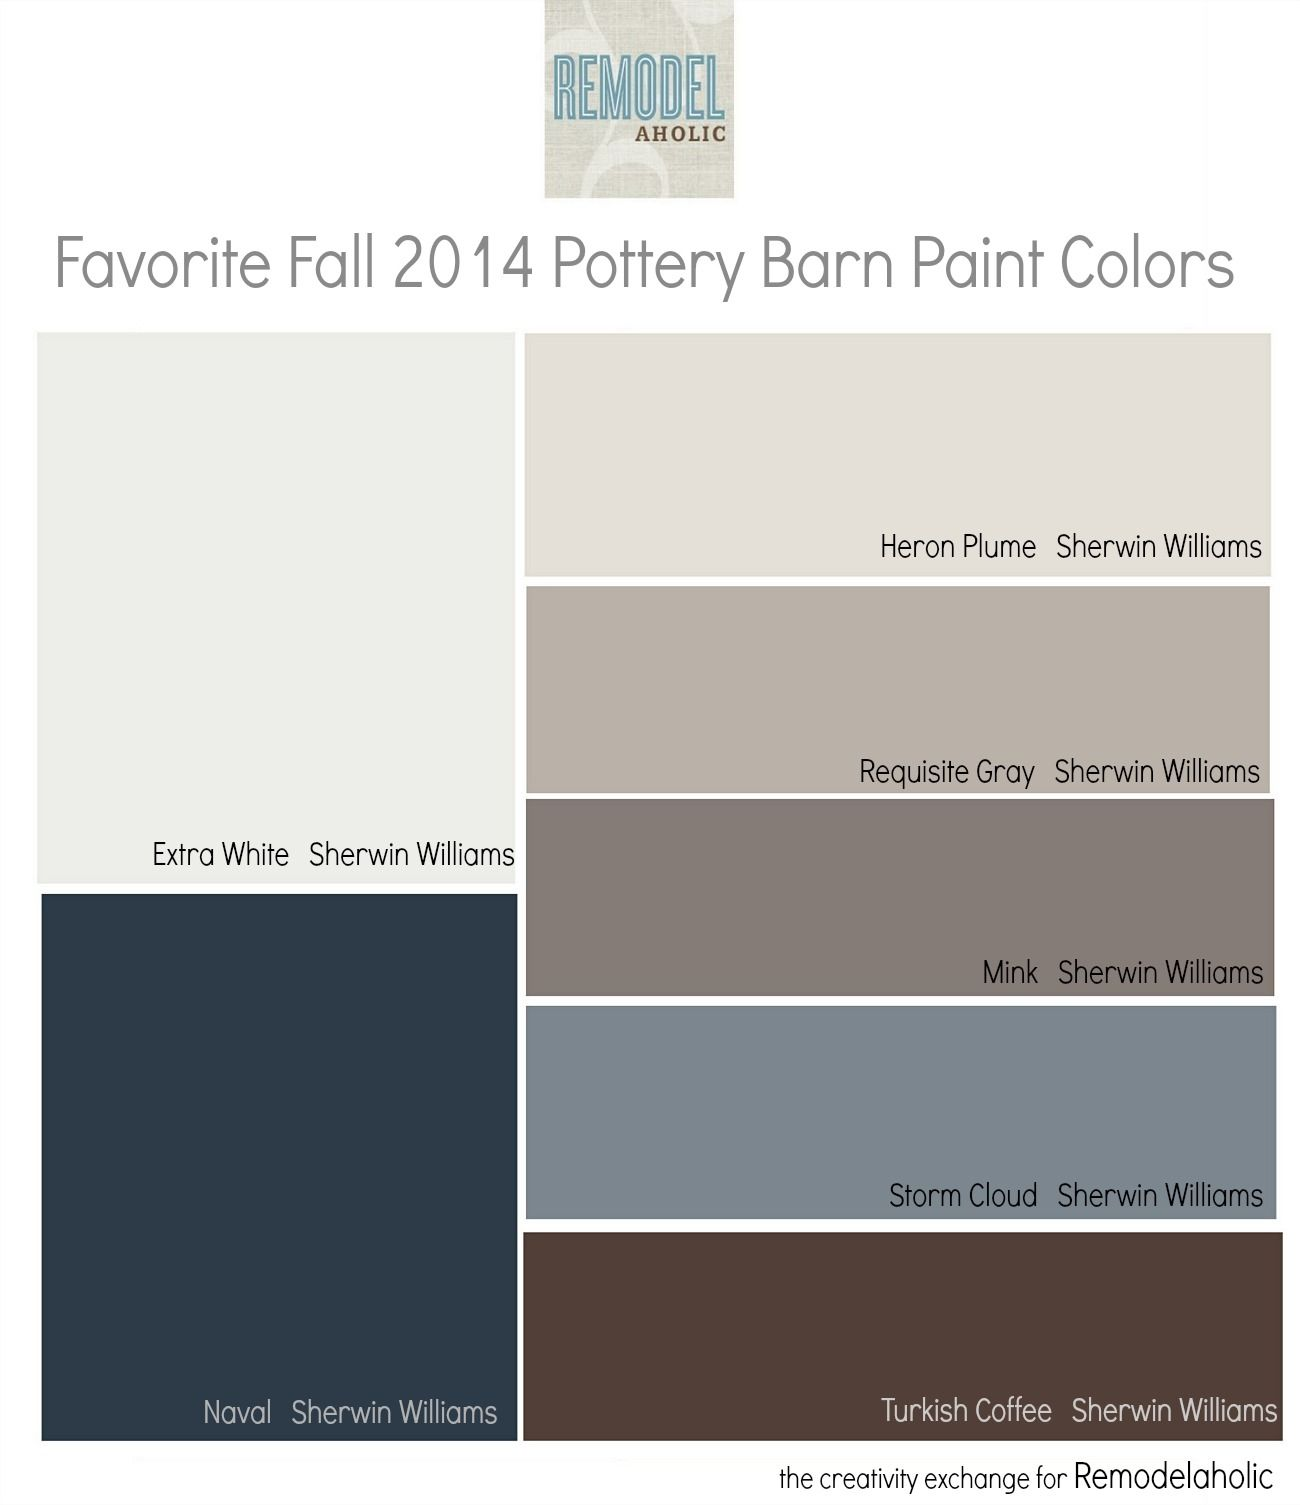 Favorites From The Fall 2014 Pottery Barn Paint Color Collection Remodelaholic Com Pottery Barn Paint Colors Pottery Barn Paint Foyer Paint Colors